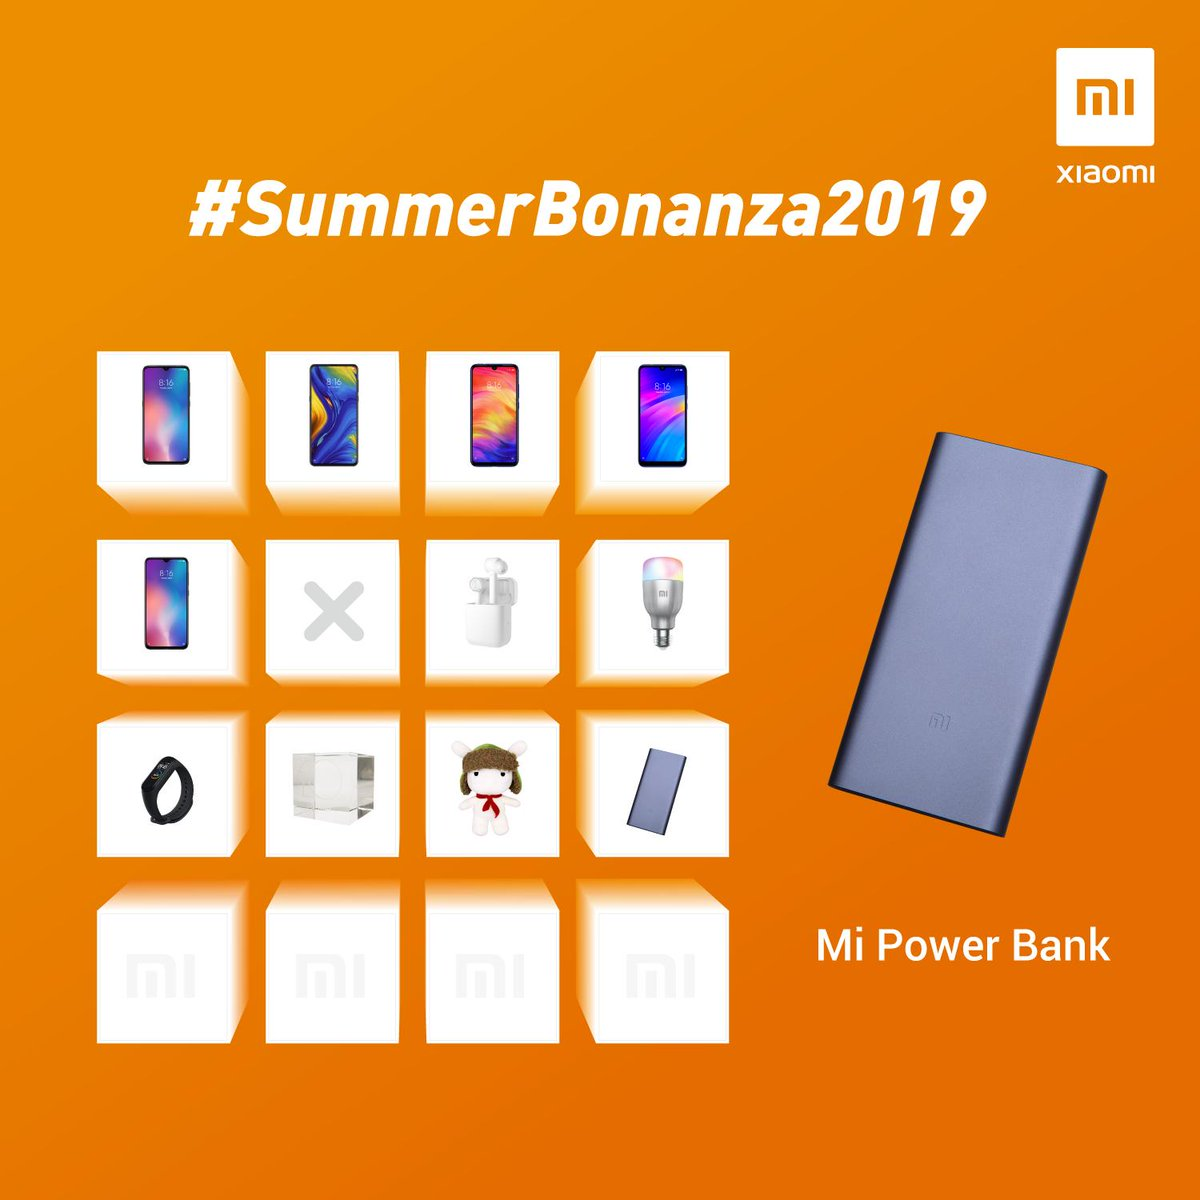 d1ba2289d134 #MiPowerBank is now added into the Ultimate Gift Box!pic.twitter .com/7wsgfRYtOs